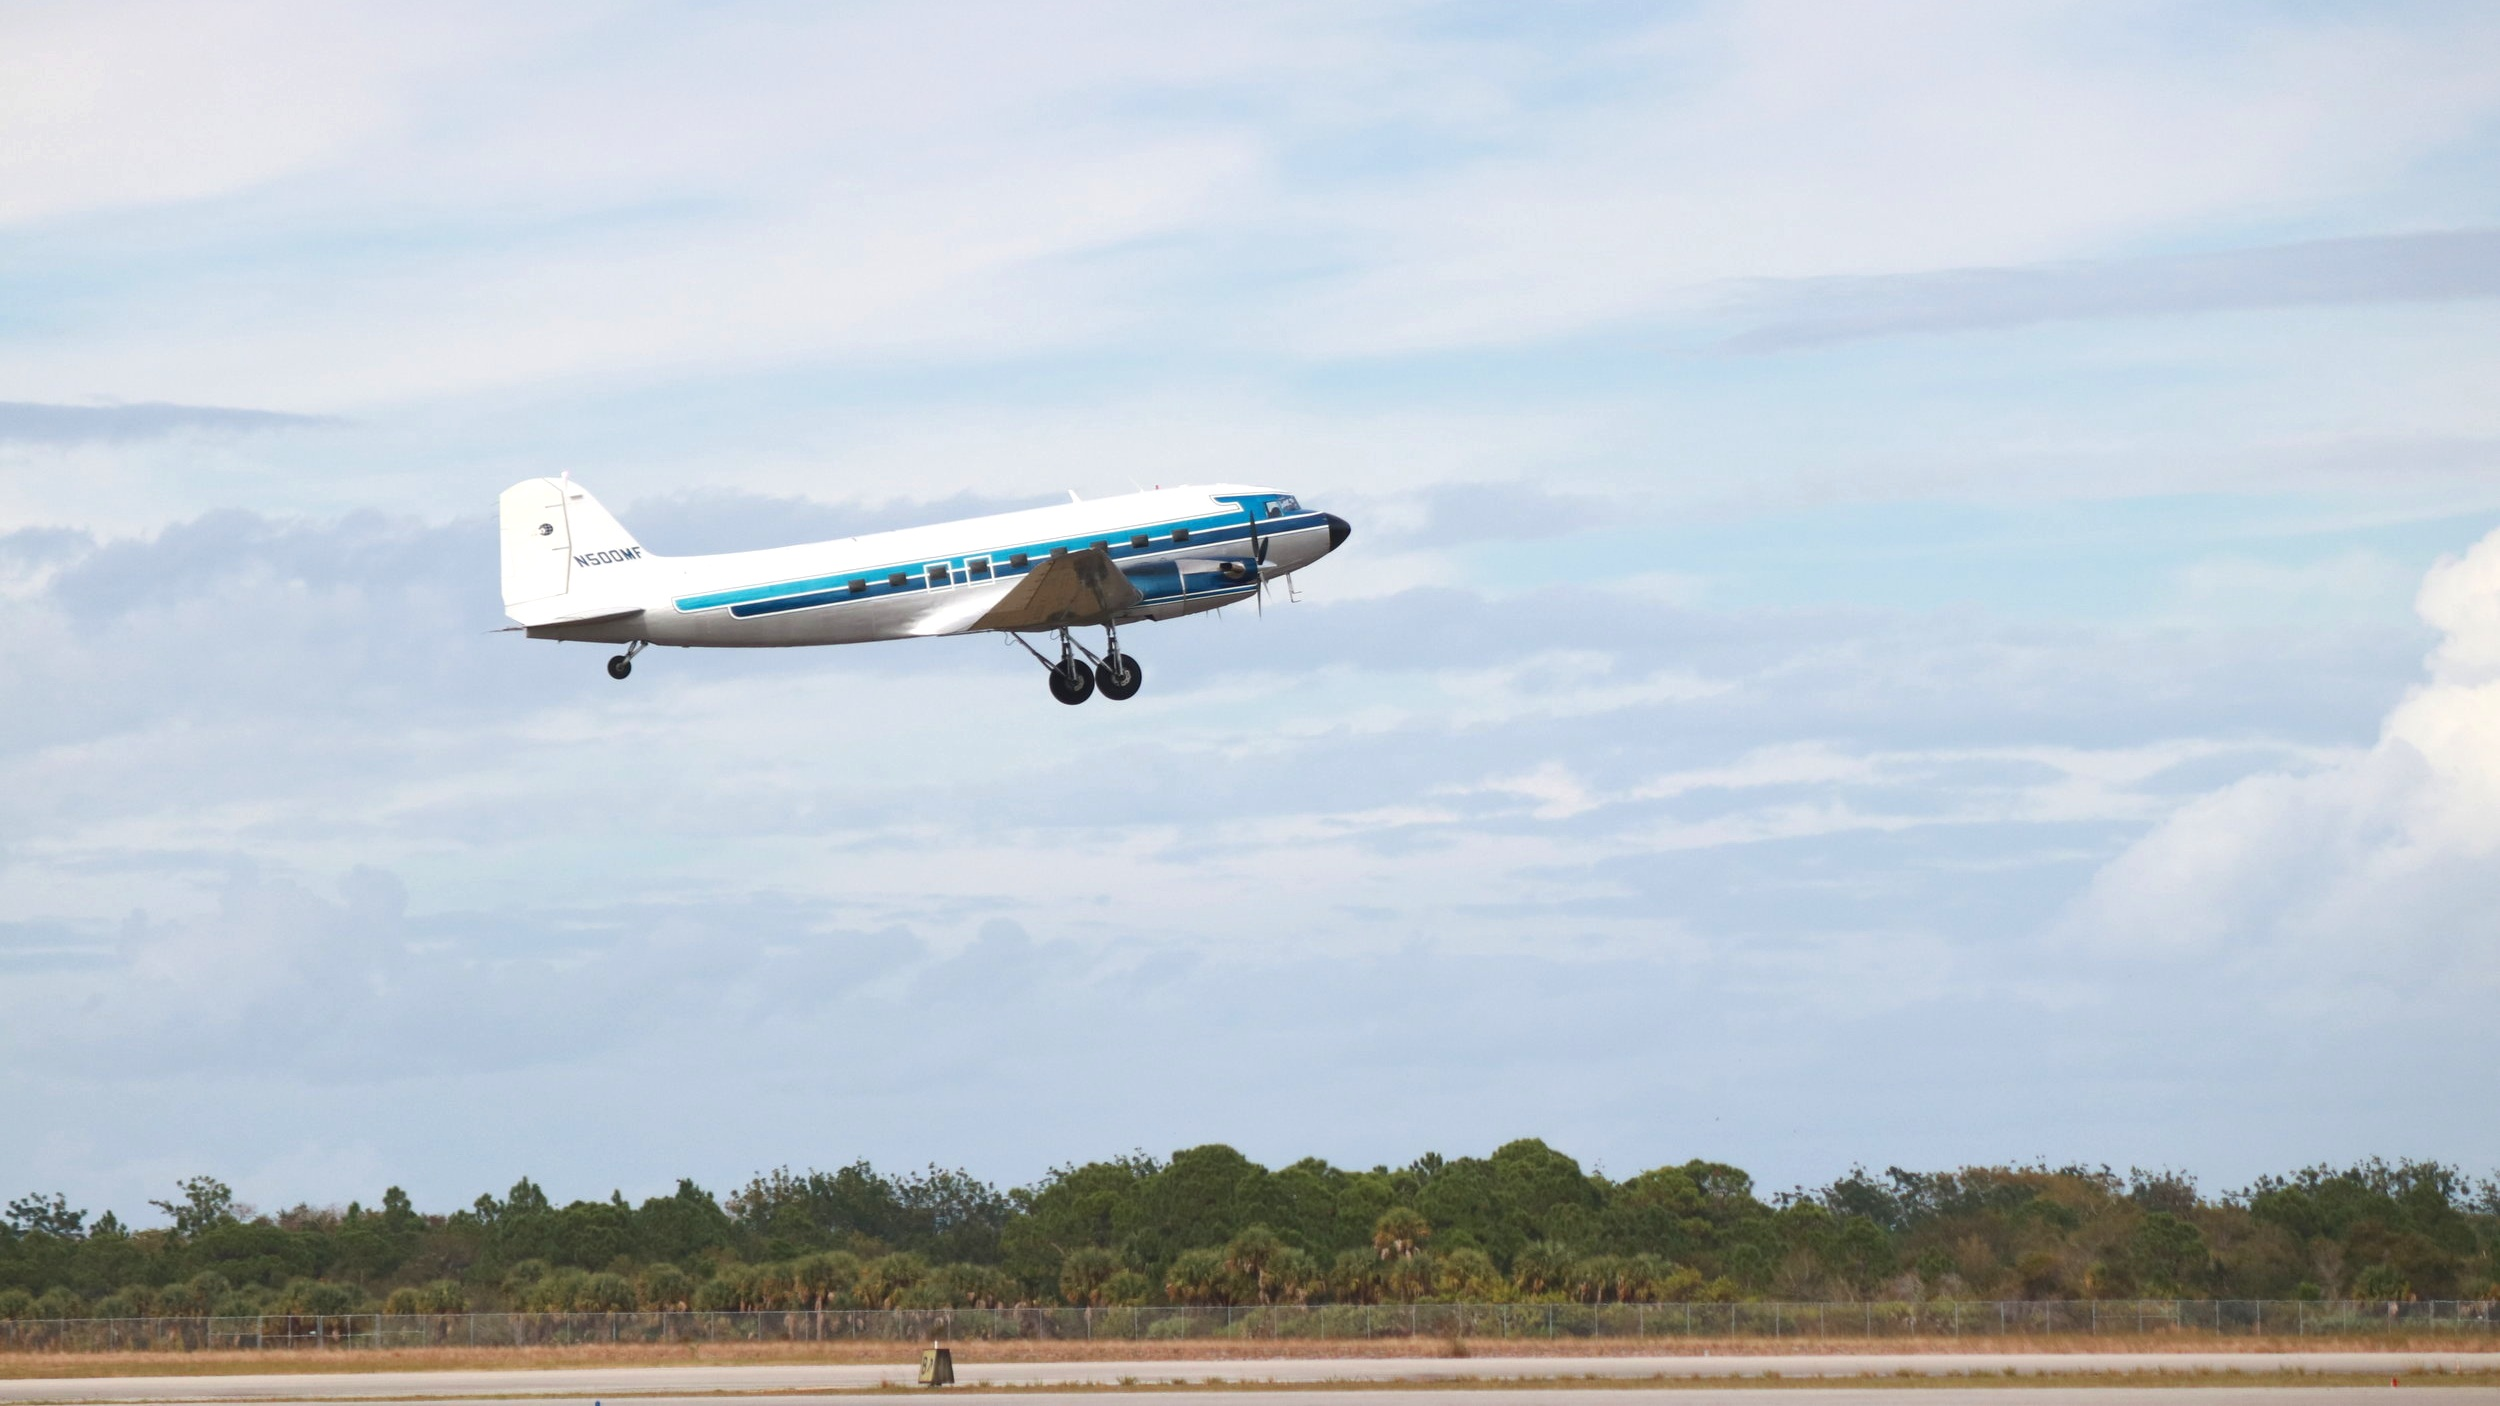 MFI takes off from the Treasure Coast International Airport in Fort Pierce, FL.